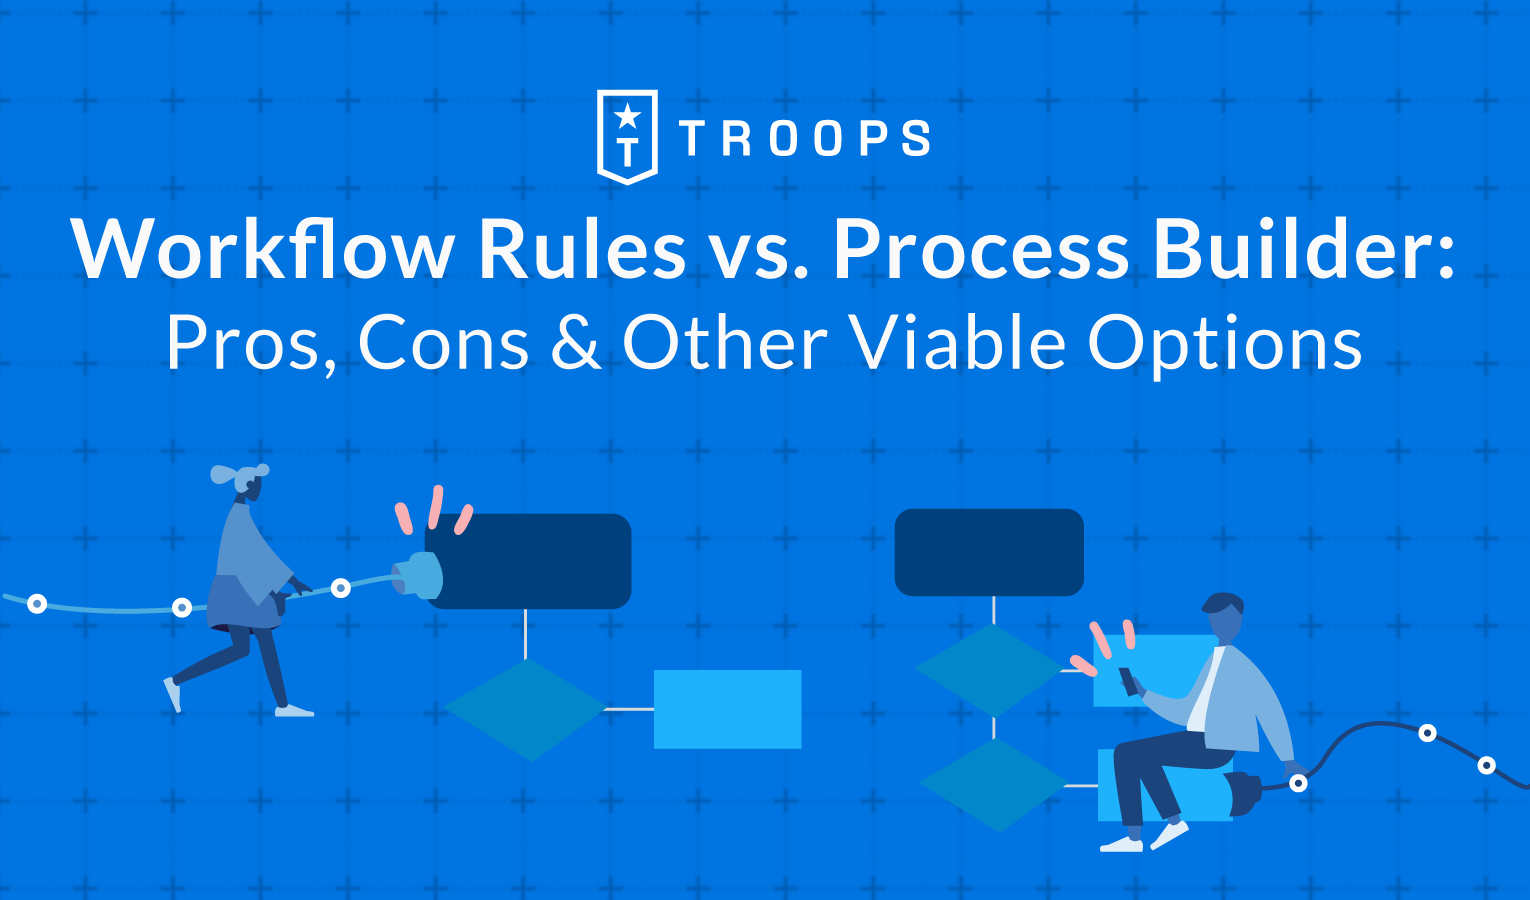 Workflow Rules vs. Process Builder: Pros, Cons & Other Viable Options